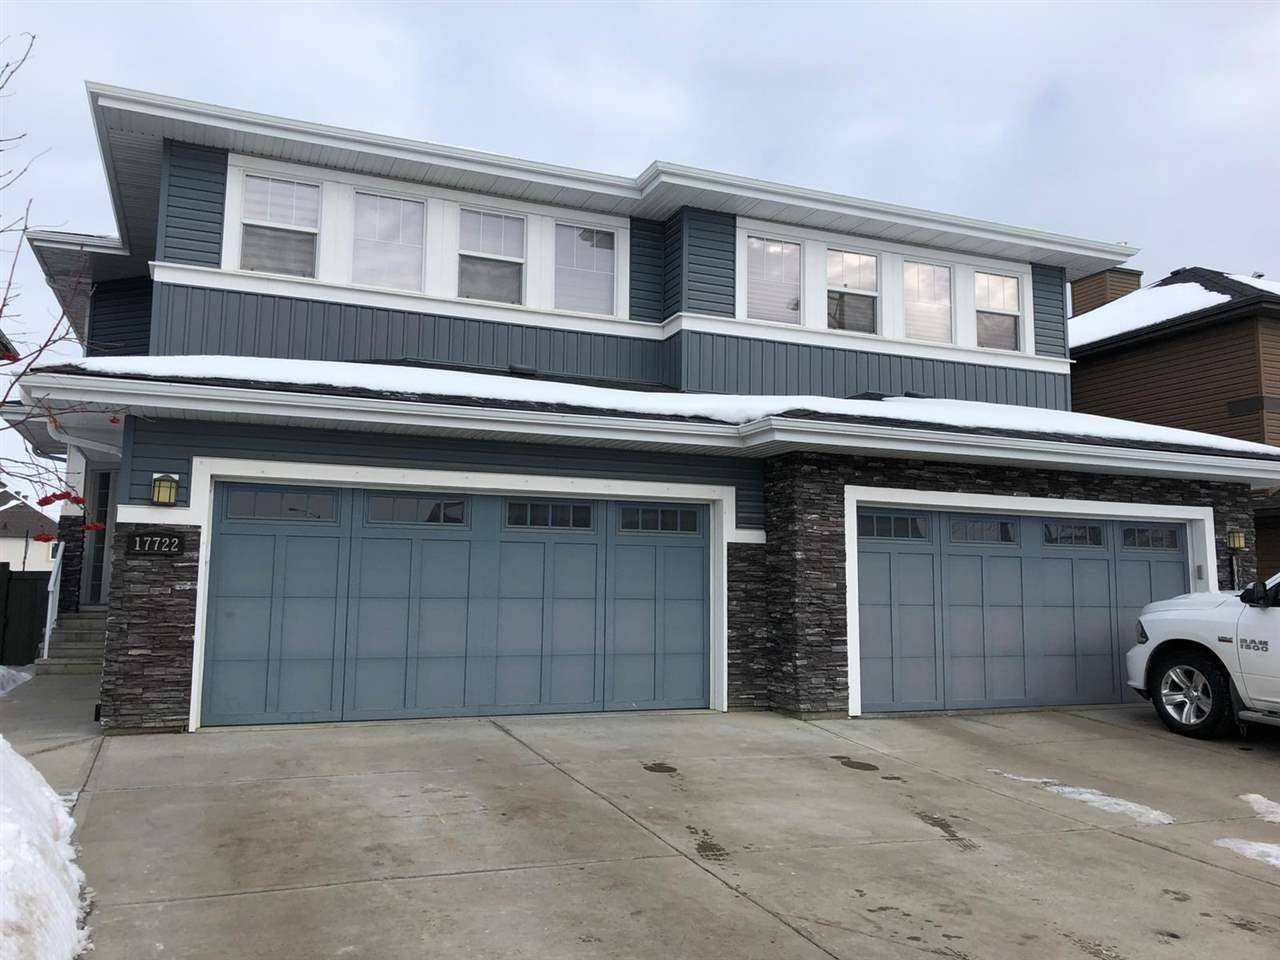 Townhouse for sale at 17722 10 Ave Sw Edmonton Alberta - MLS: E4184307